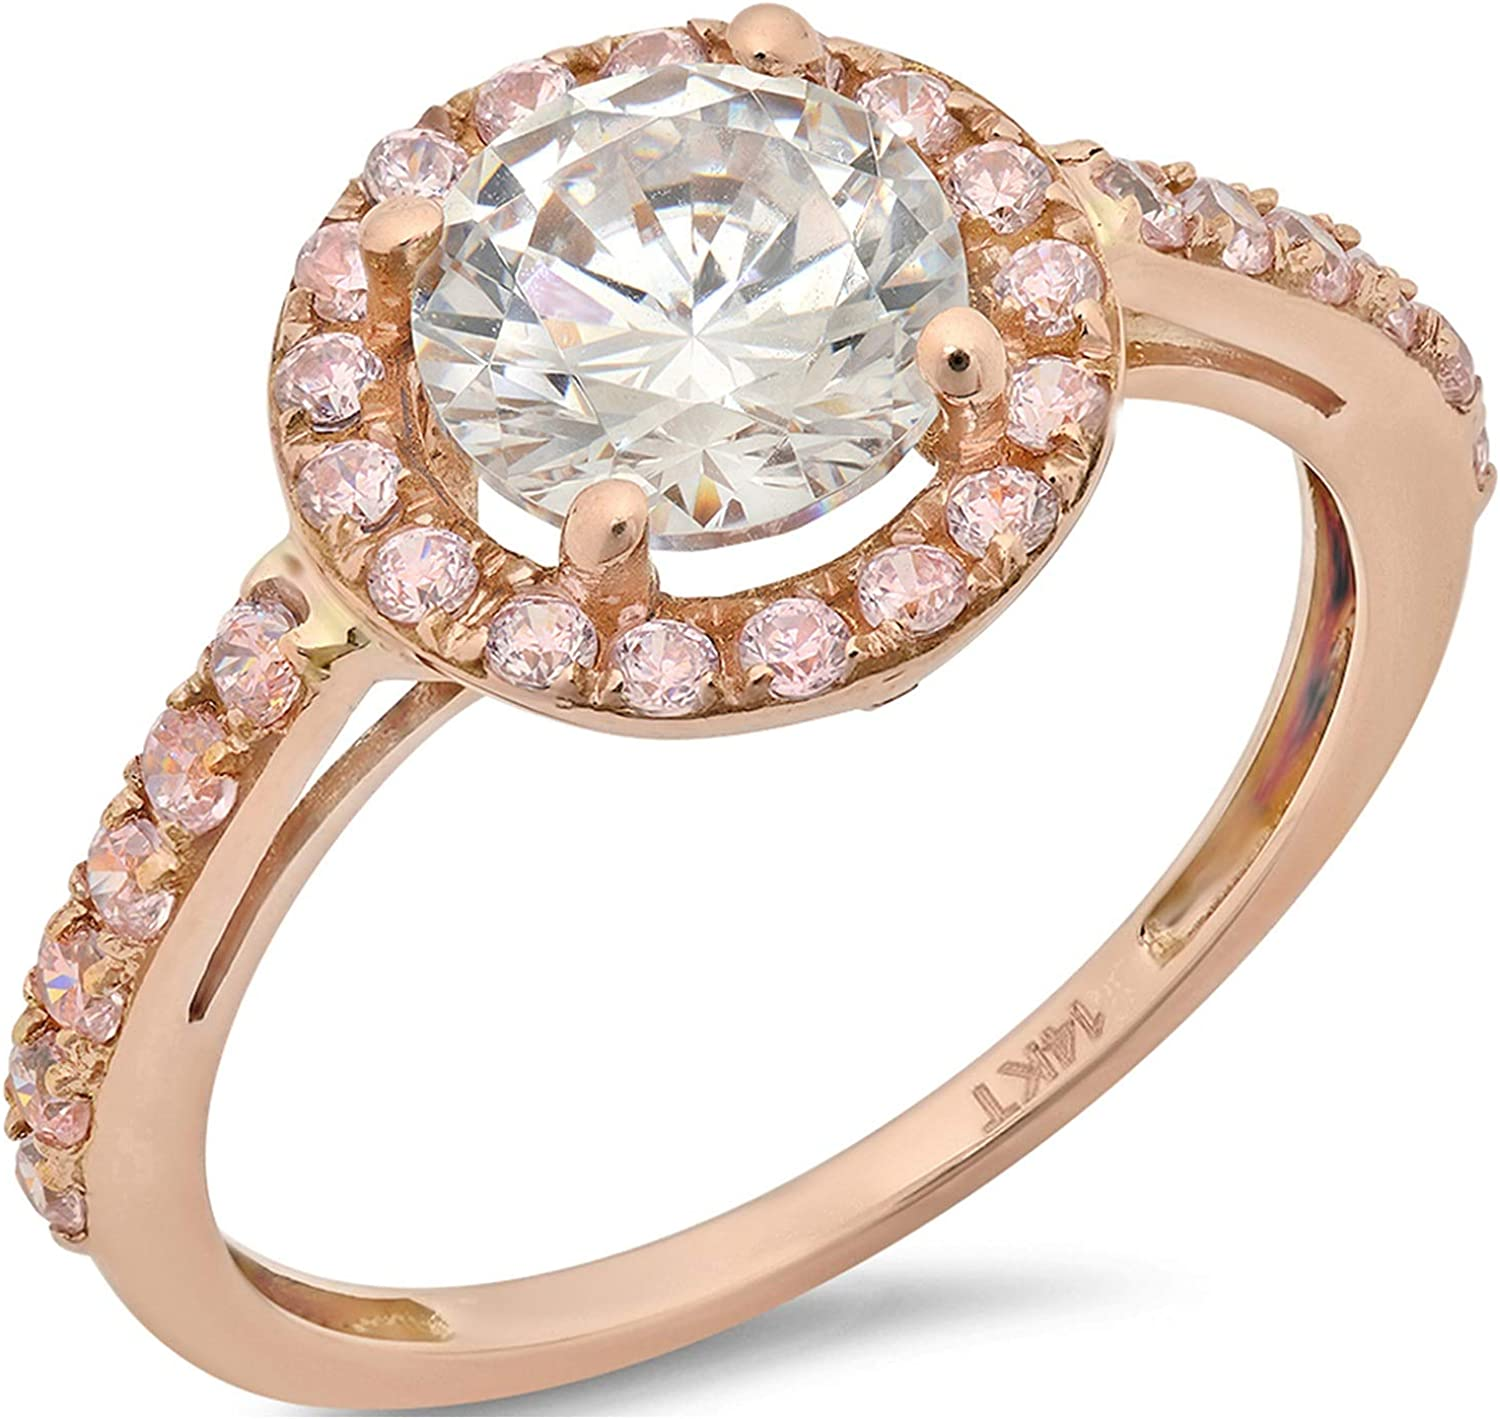 2.40 ct Brilliant Round Cut Solitaire accent Halo Stunning Genuine Lab Created White Sapphire Ideal VVS1 & Simulated Diamond Engagement Promise Statement Anniversary Bridal Wedding Ring 14k Rose Gold